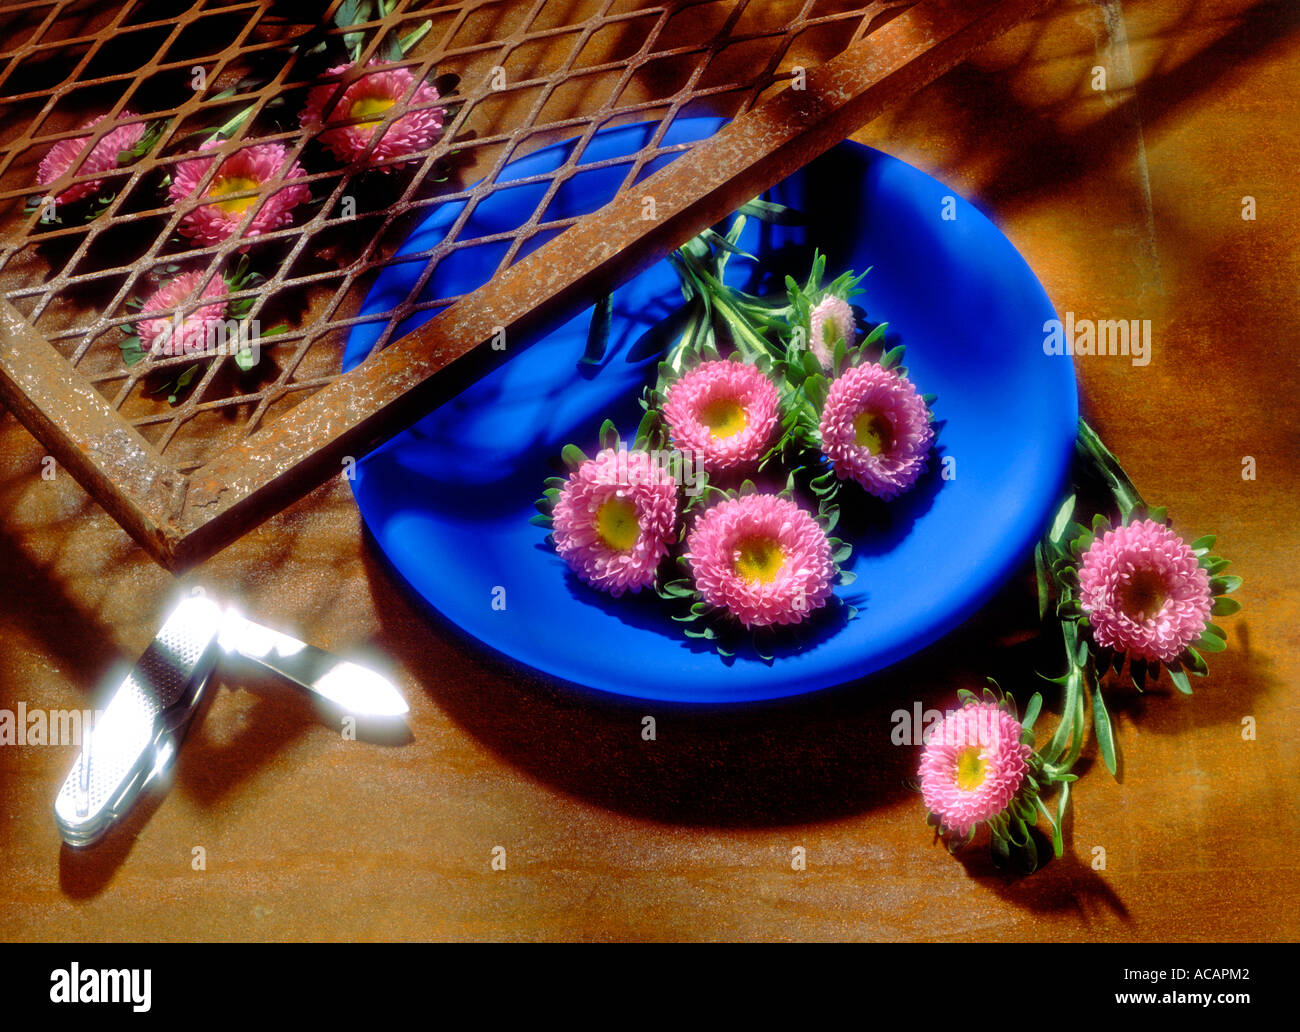 Pink Flowers in a Blue Bowl Stock Photo